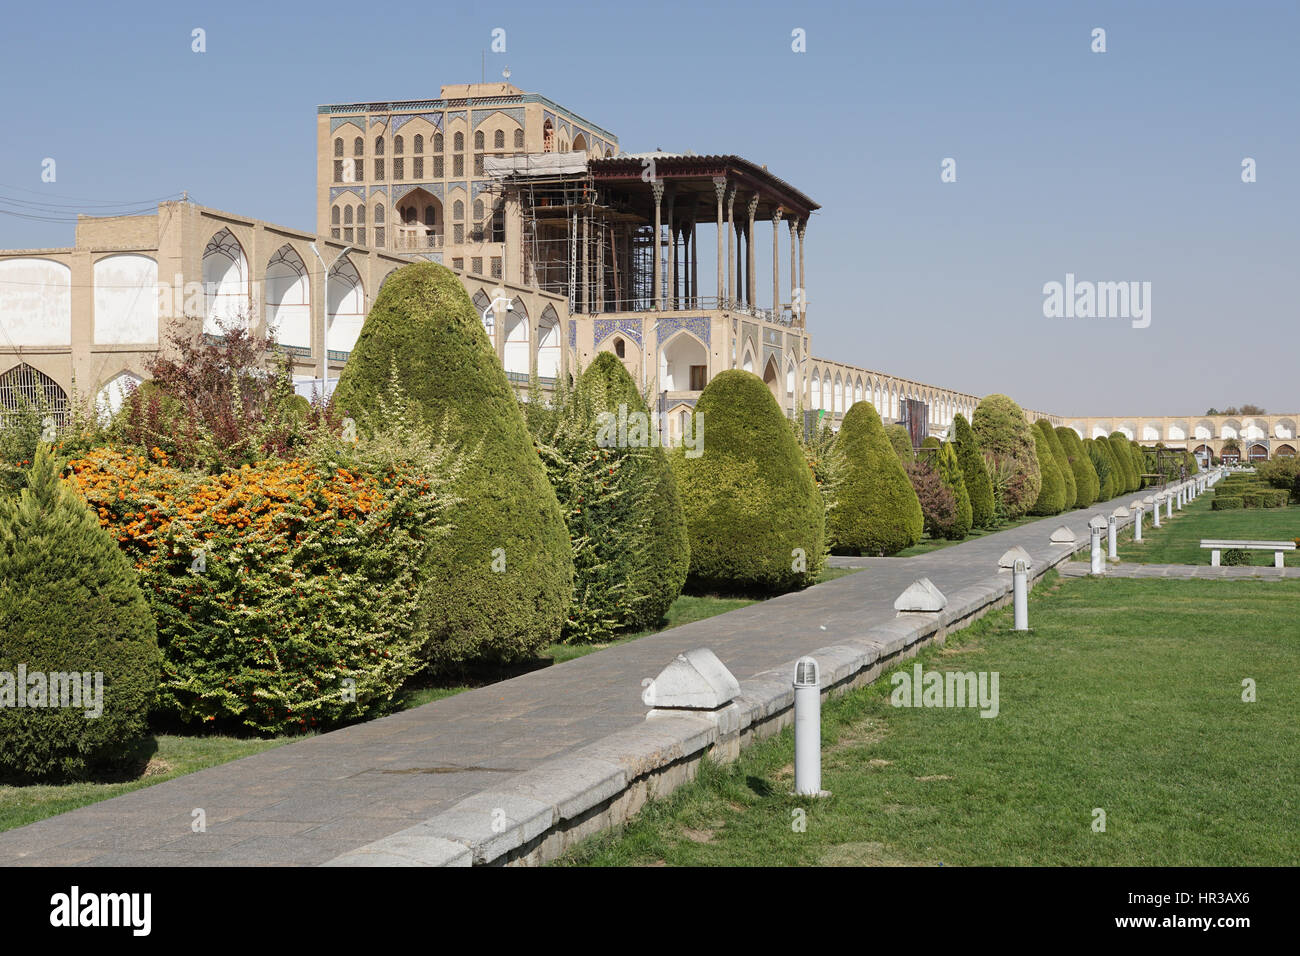 ISFAHAN, IRAN - OCTOBER 11, 2016: Ali Qapu Palace on Meydan-e Imam on October 11, 2016 in Isfahan, Iran. Stock Photo